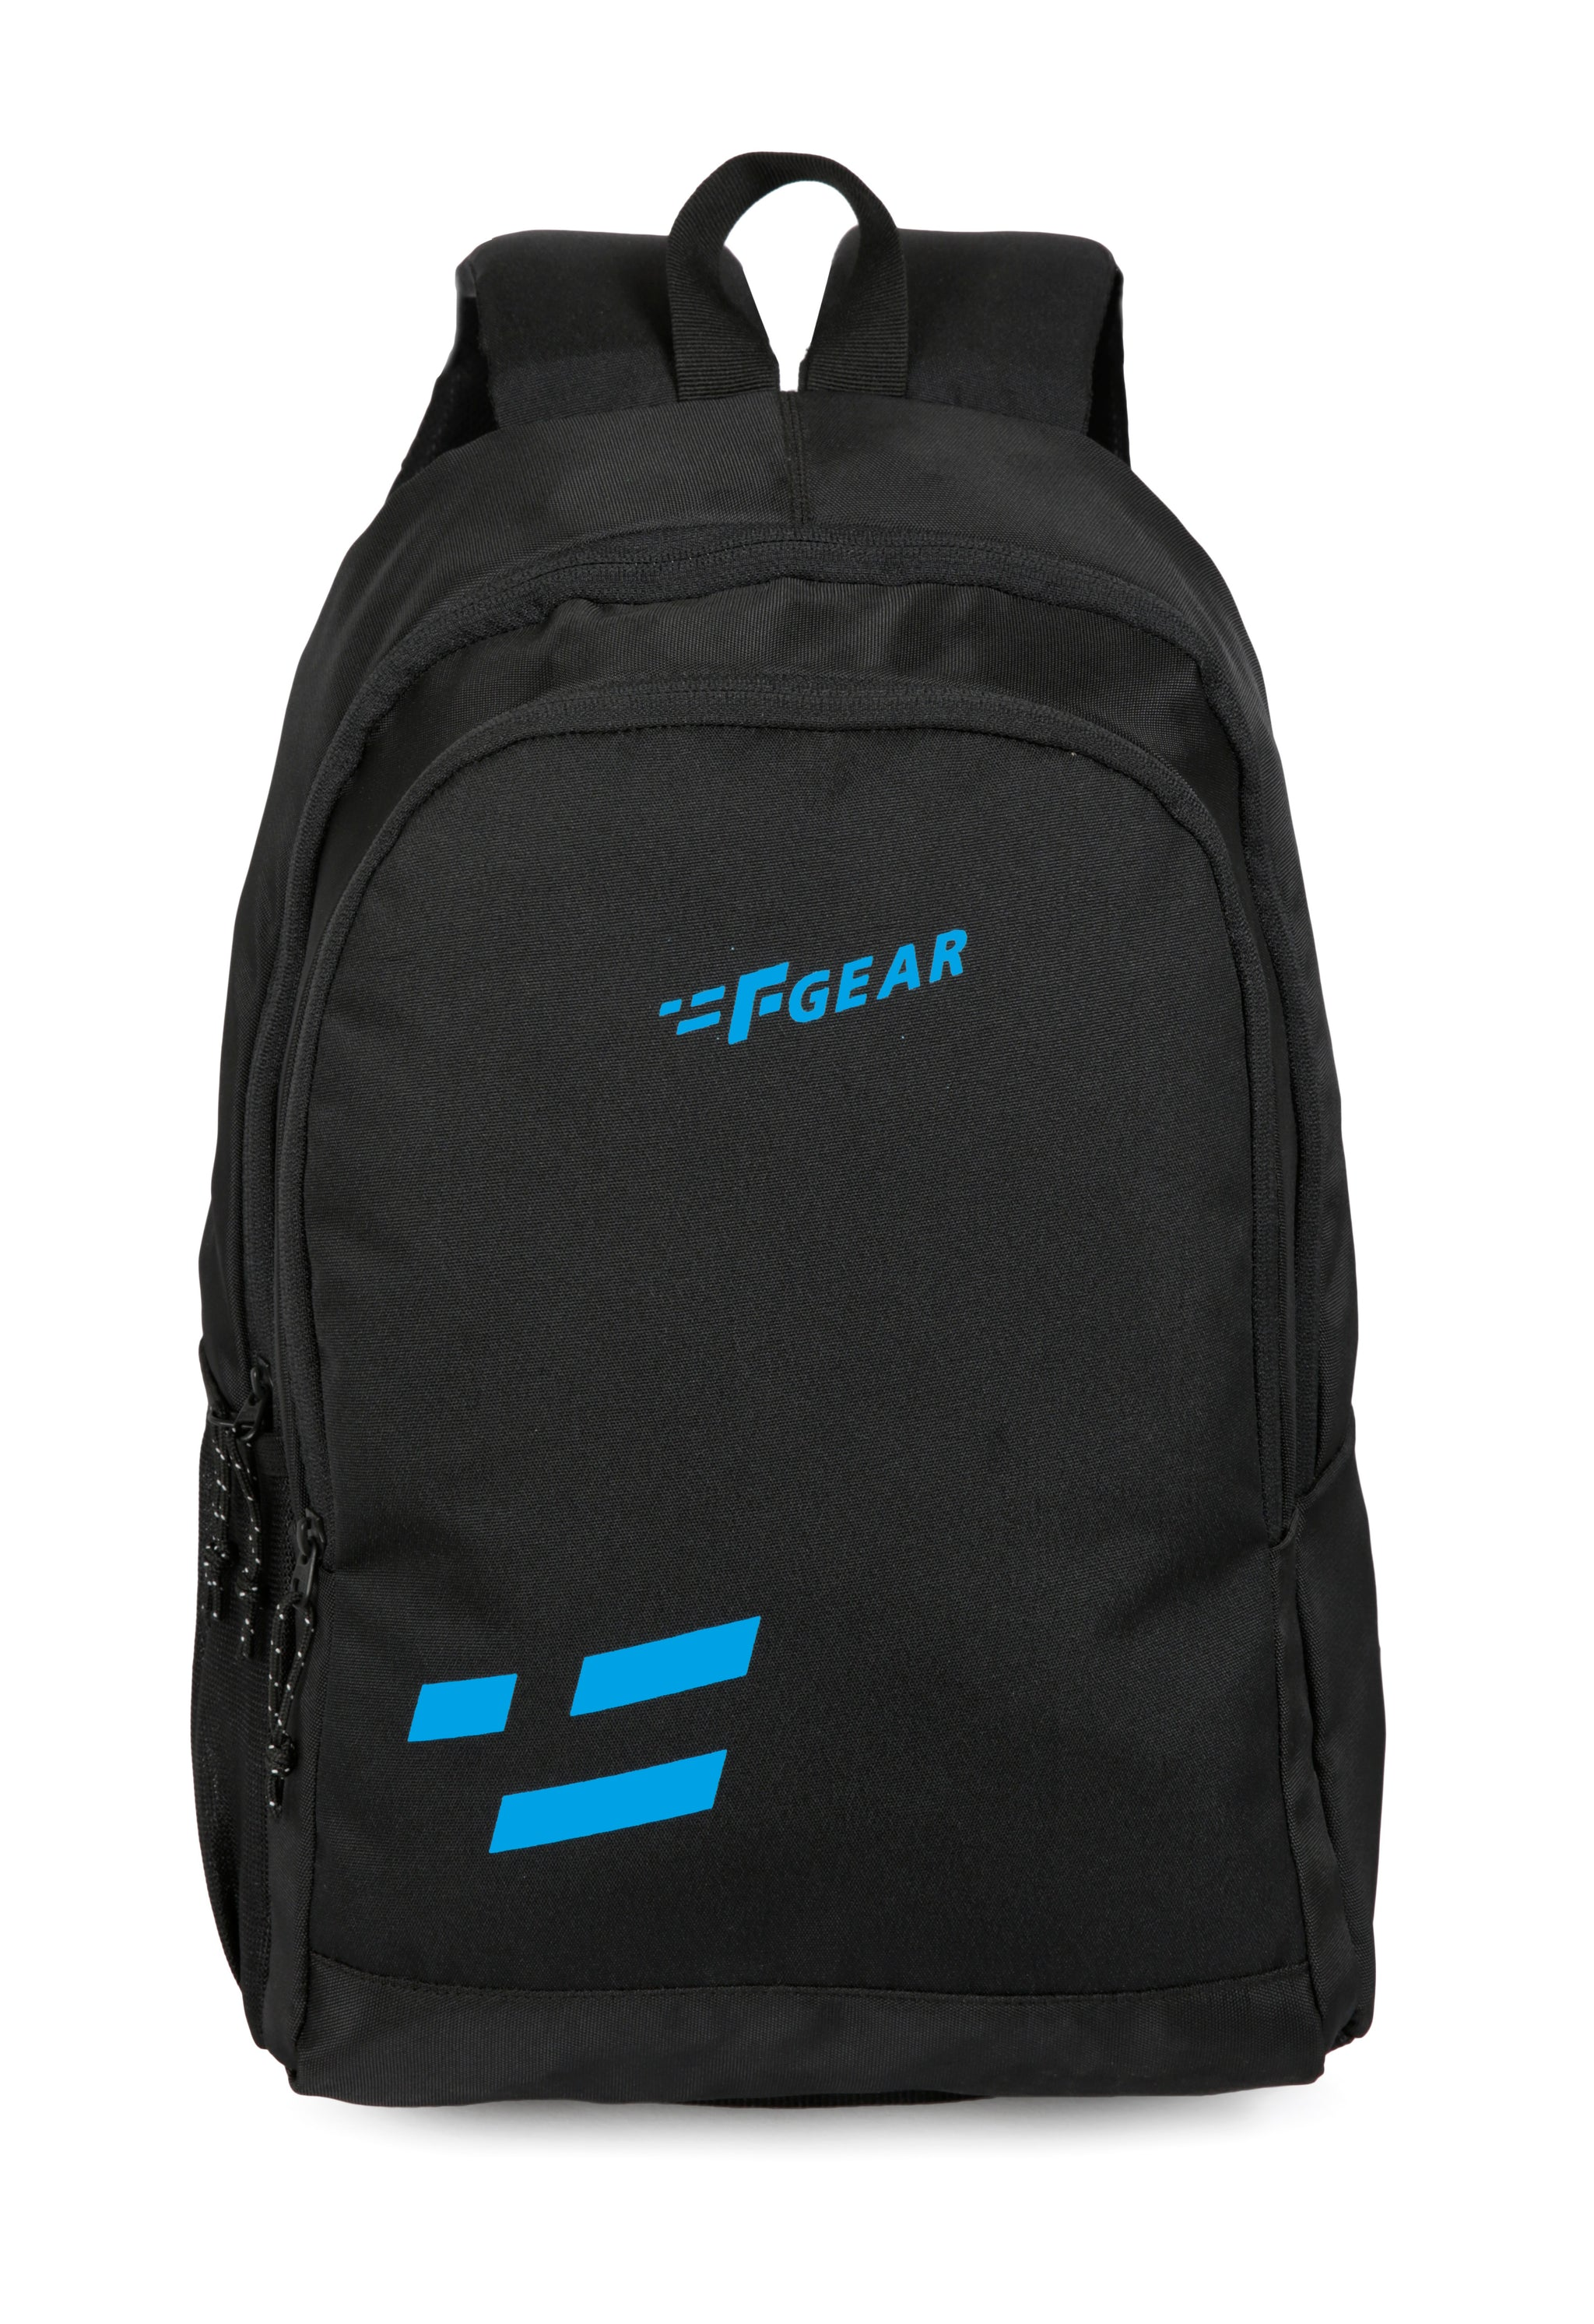 F Gear Castle 22 Liters Black Backpack (3227)